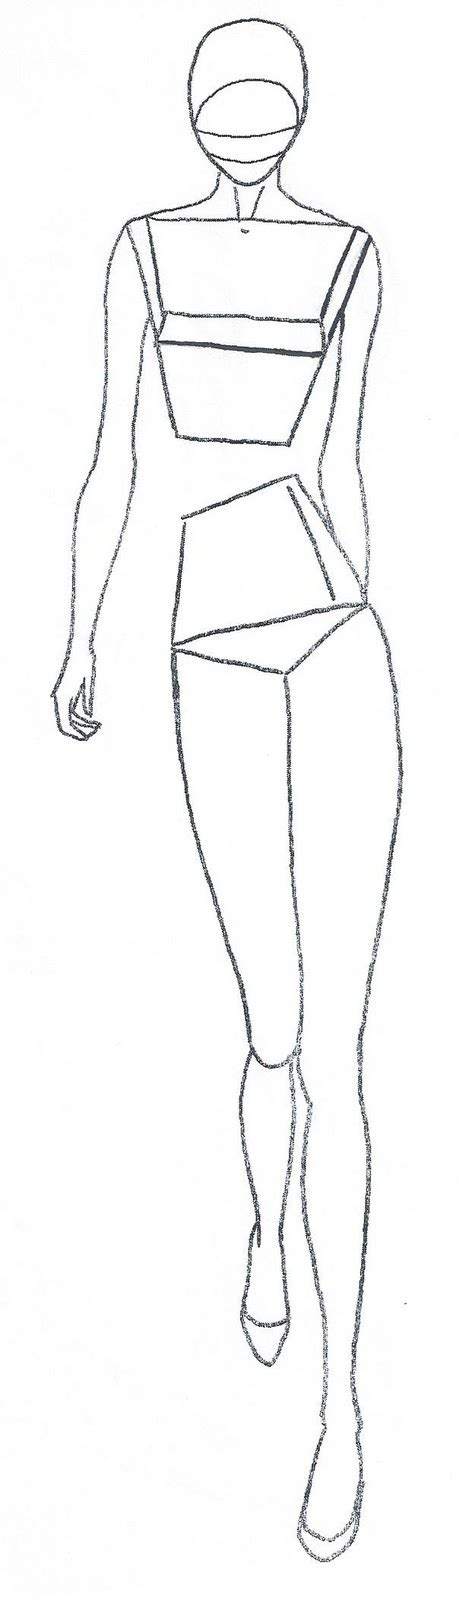 fashion templates my road to becoming a fashion designer free fashion figure templates are here